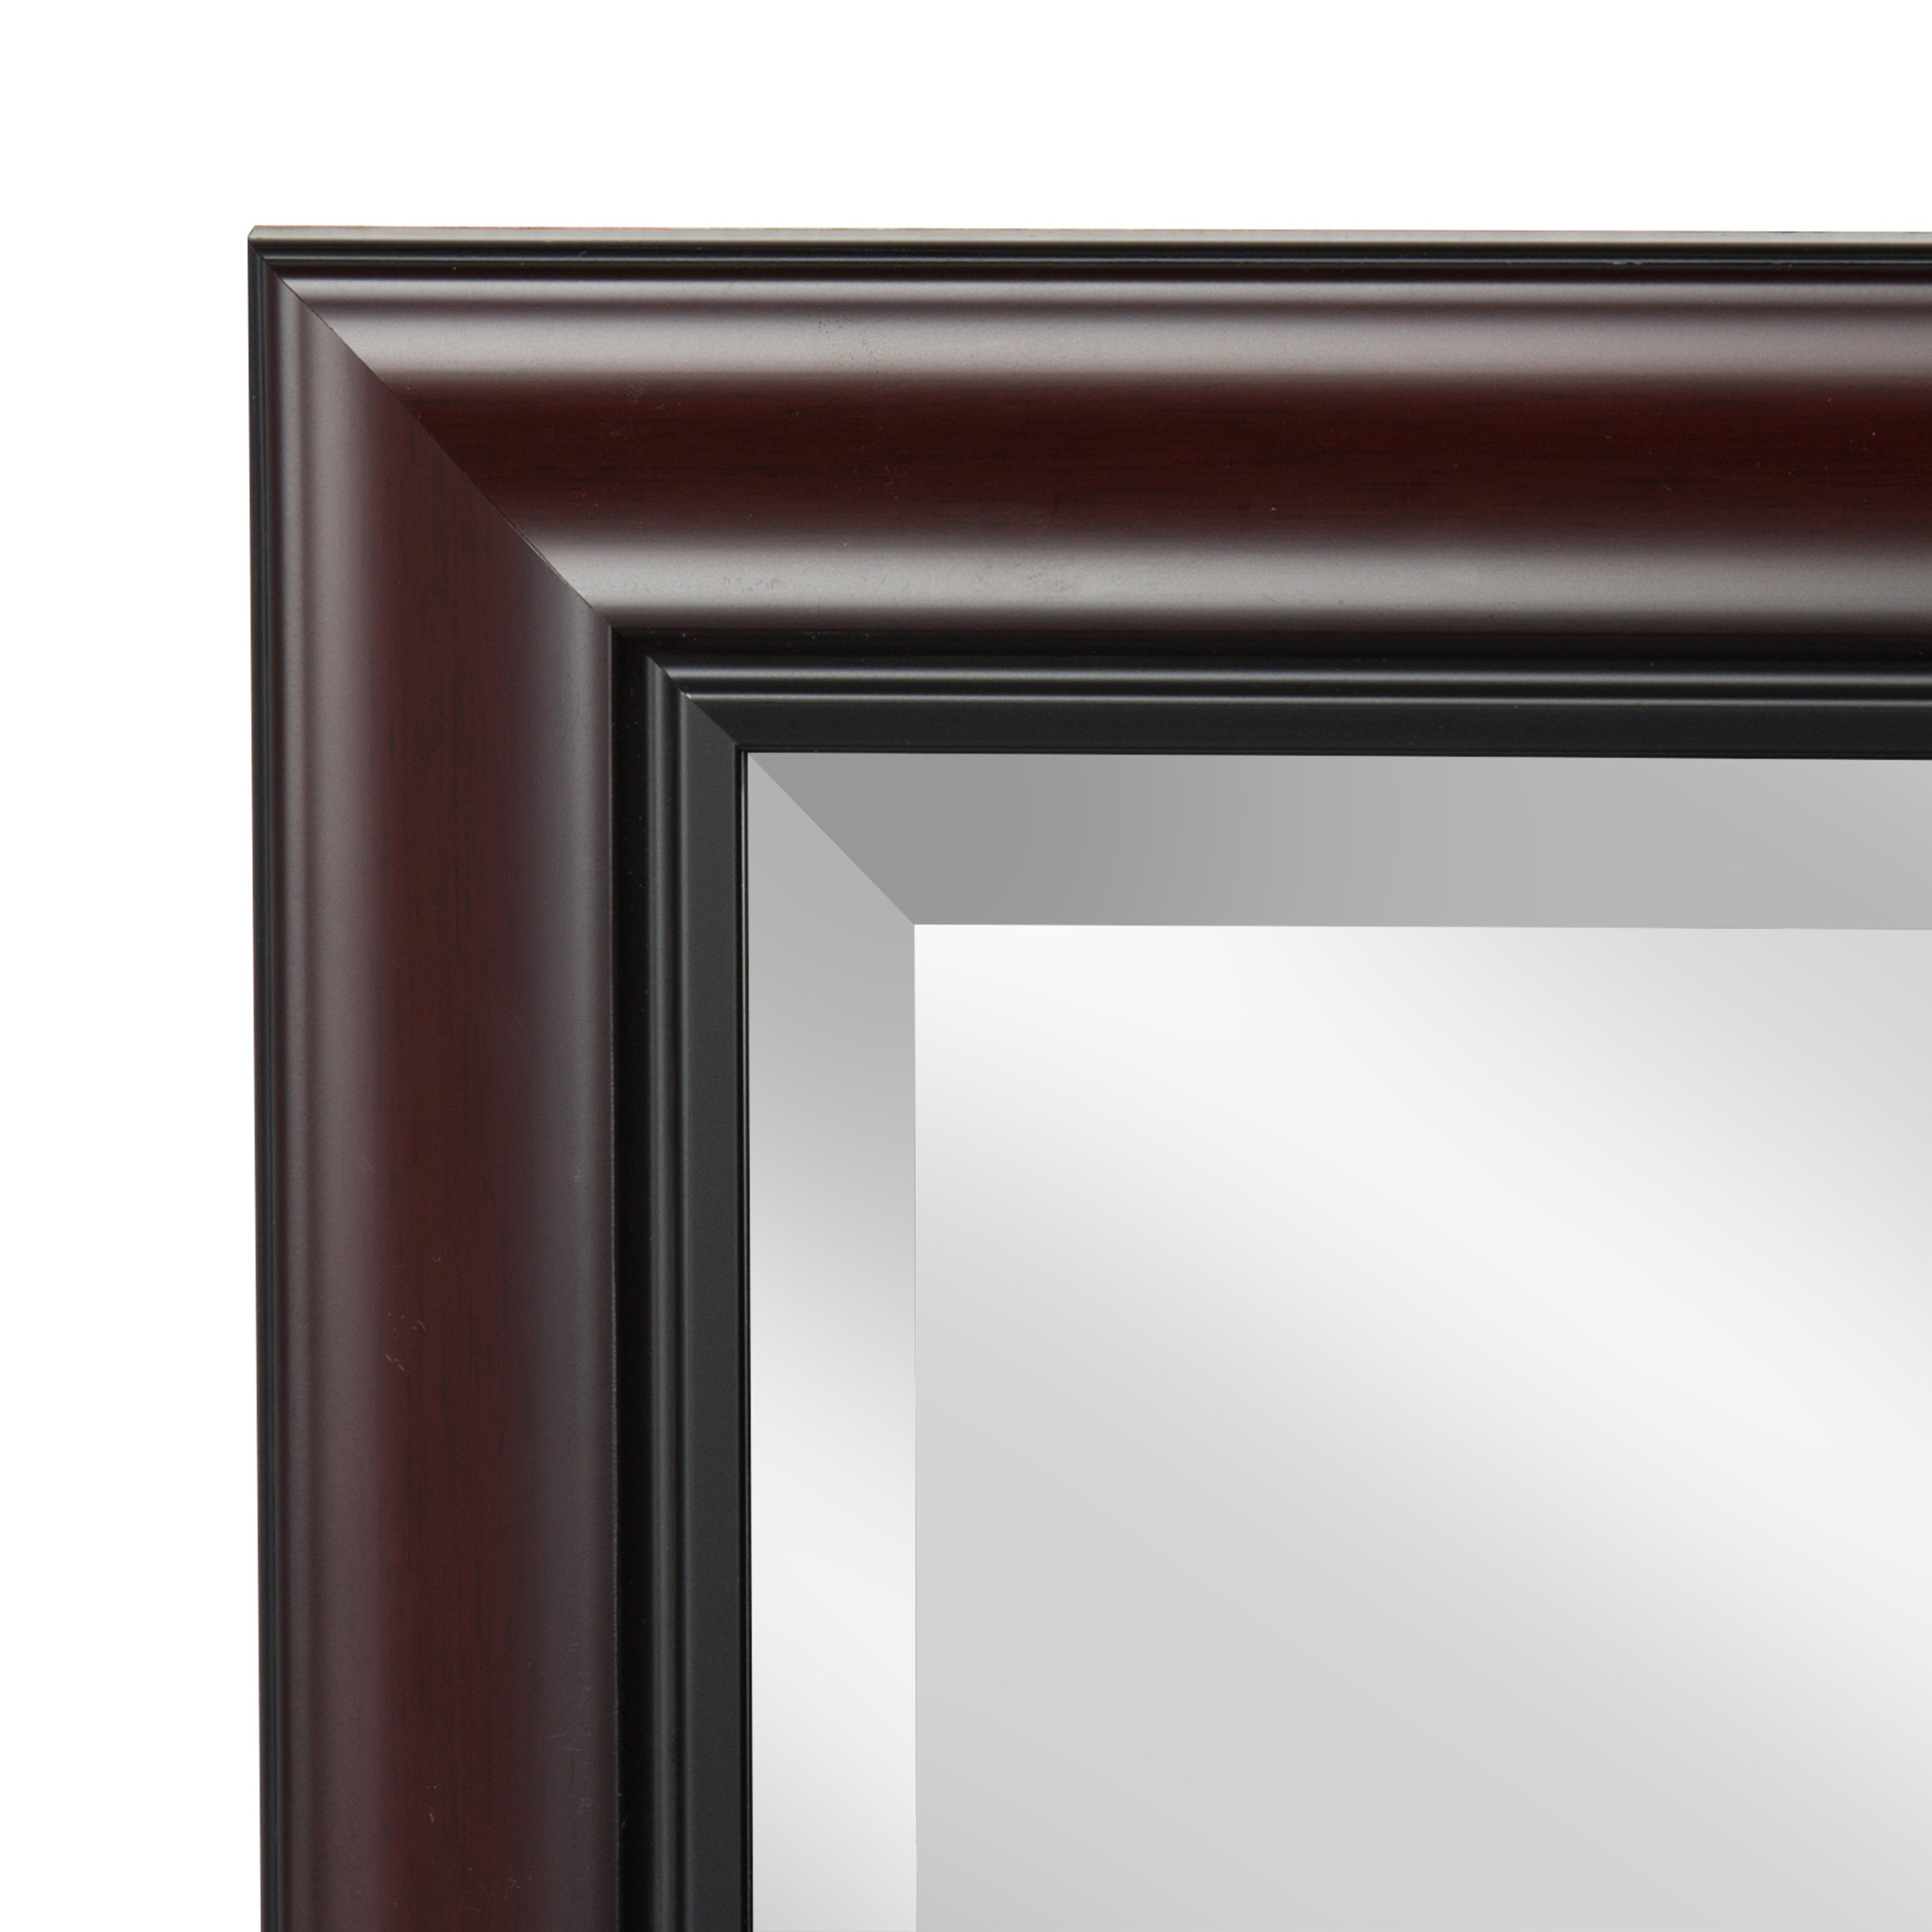 2019 Kate And Laurel Dalat Cherry Framed Beveled Wall Mirror Throughout Cherry Wall Mirrors (View 3 of 20)